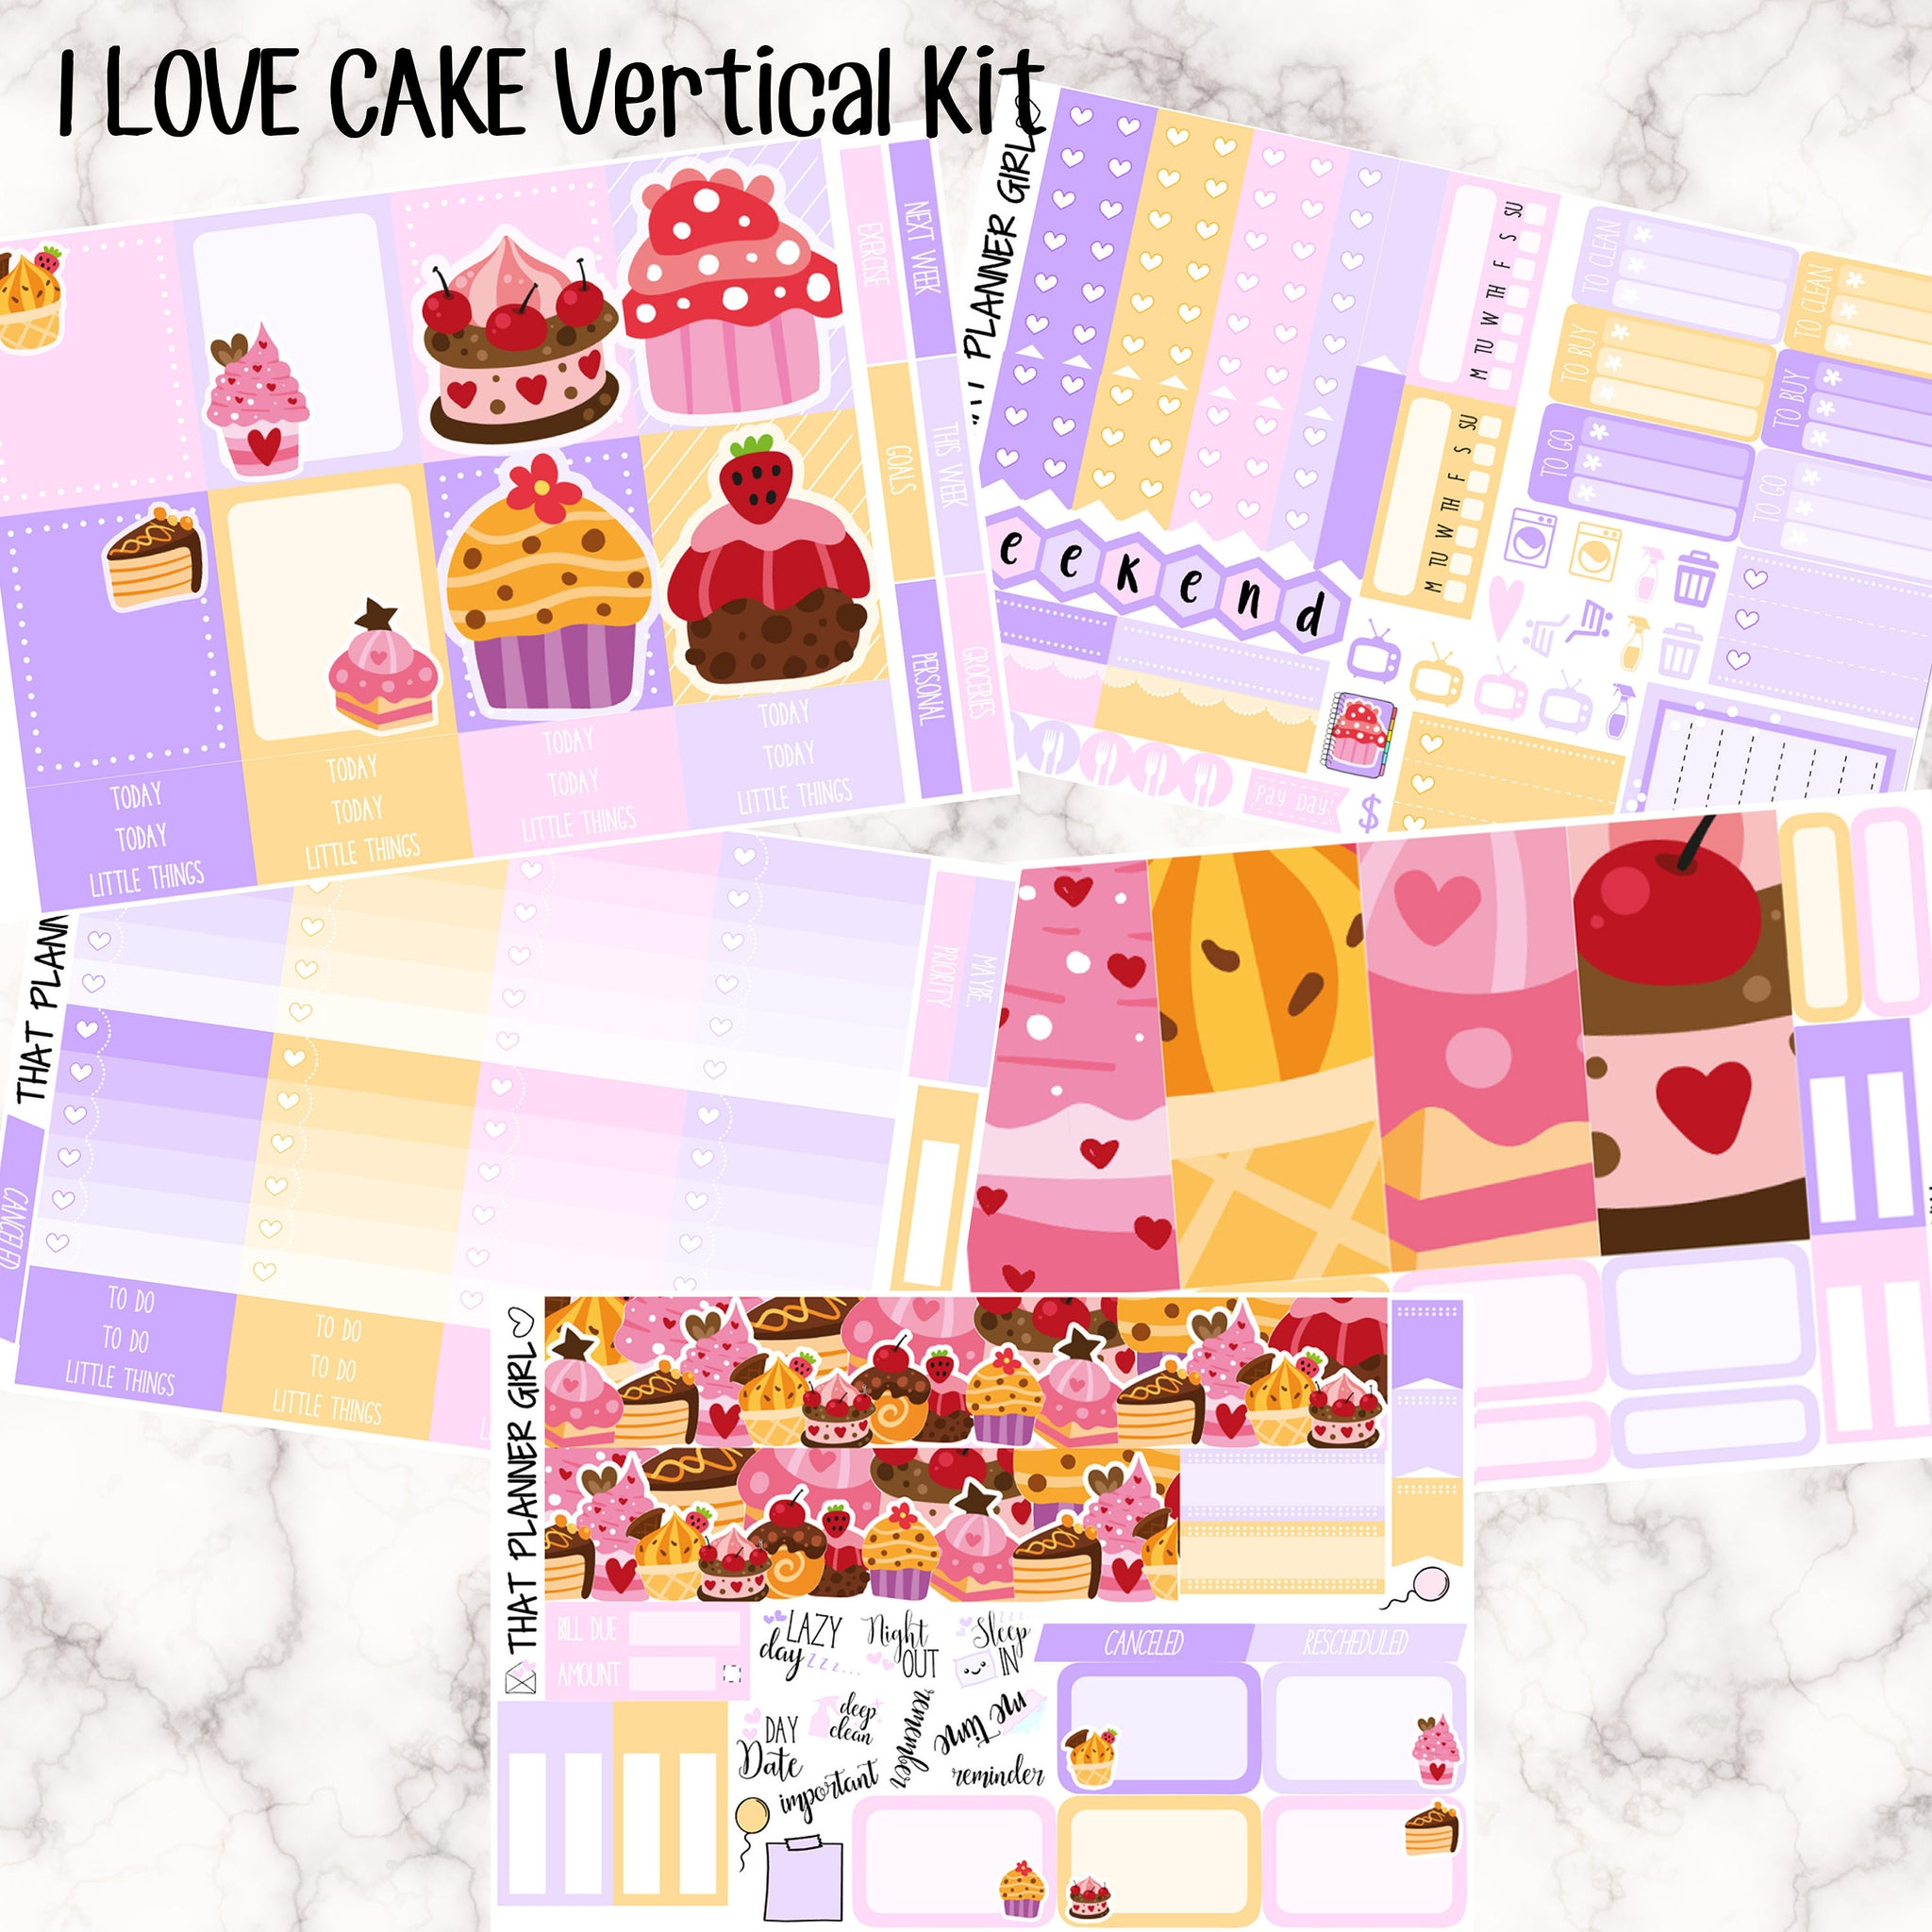 I LOVE CAKE - VERTICAL weekly kit - Erin Condren Planner Stickers - inc. full boxes, 1/2 boxes, checklists etc! Optional Date Covers